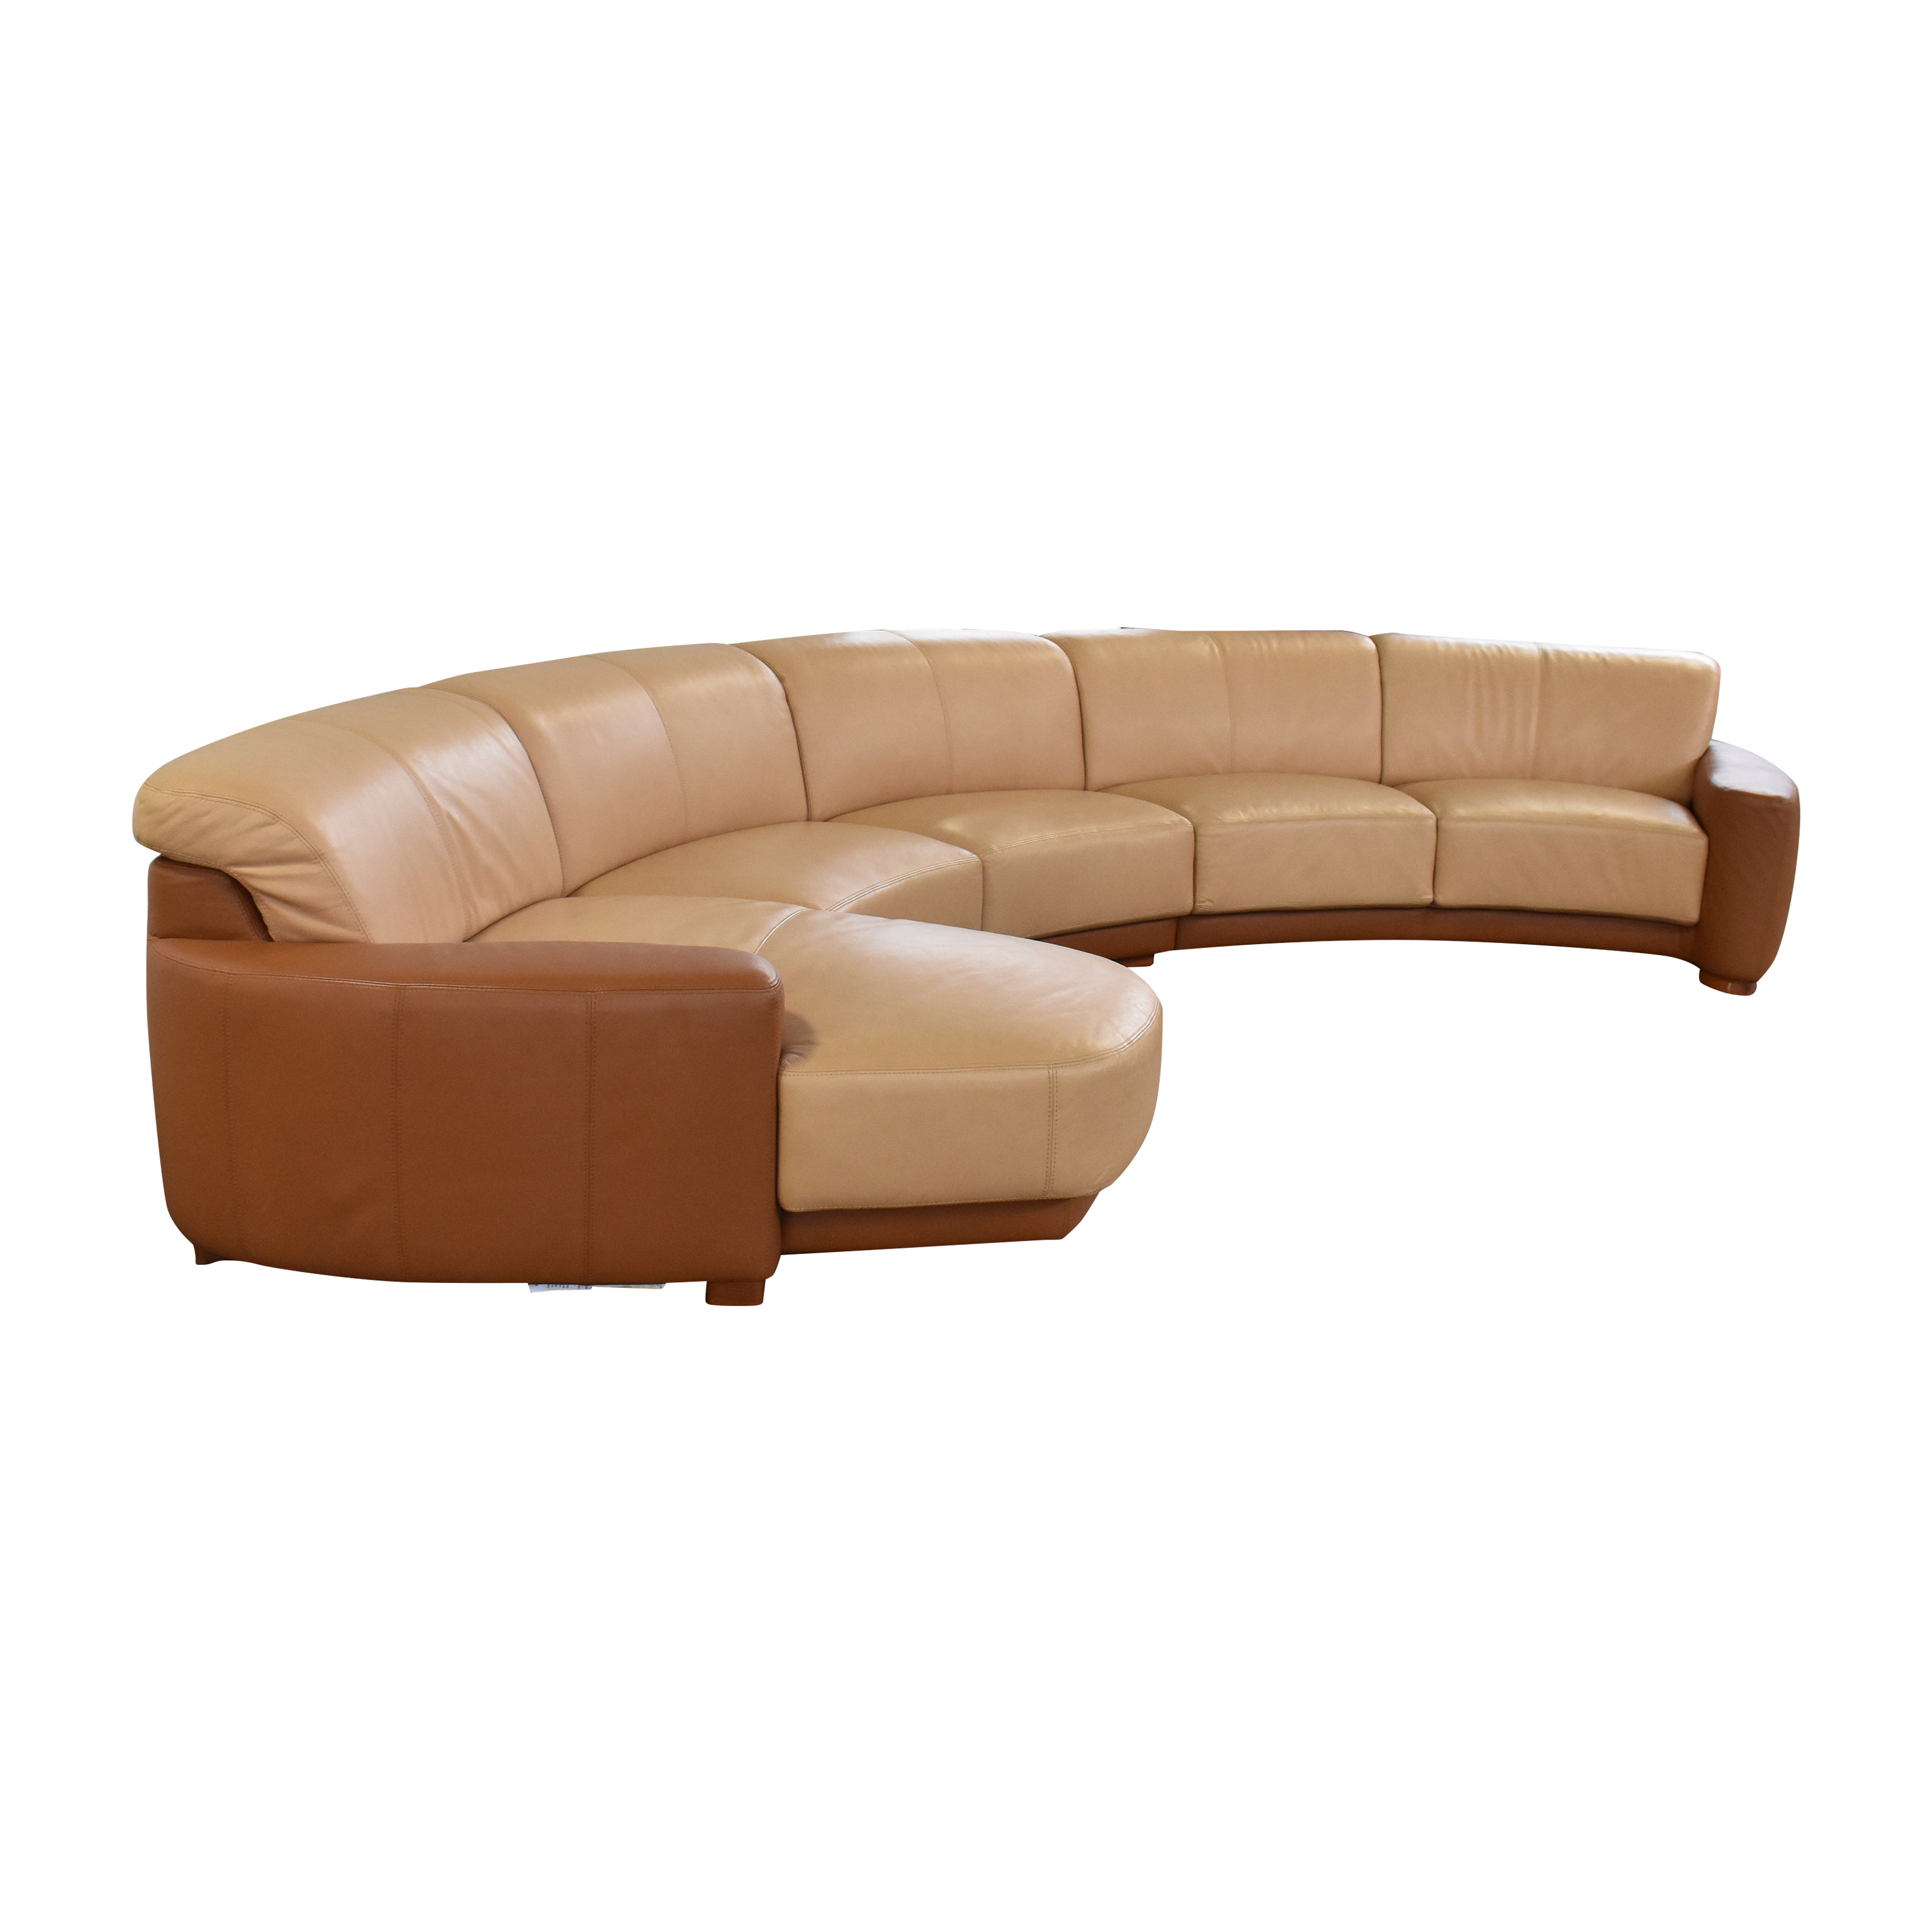 W. Schillig W. Schillig Amber Curved Sectional Sofa price